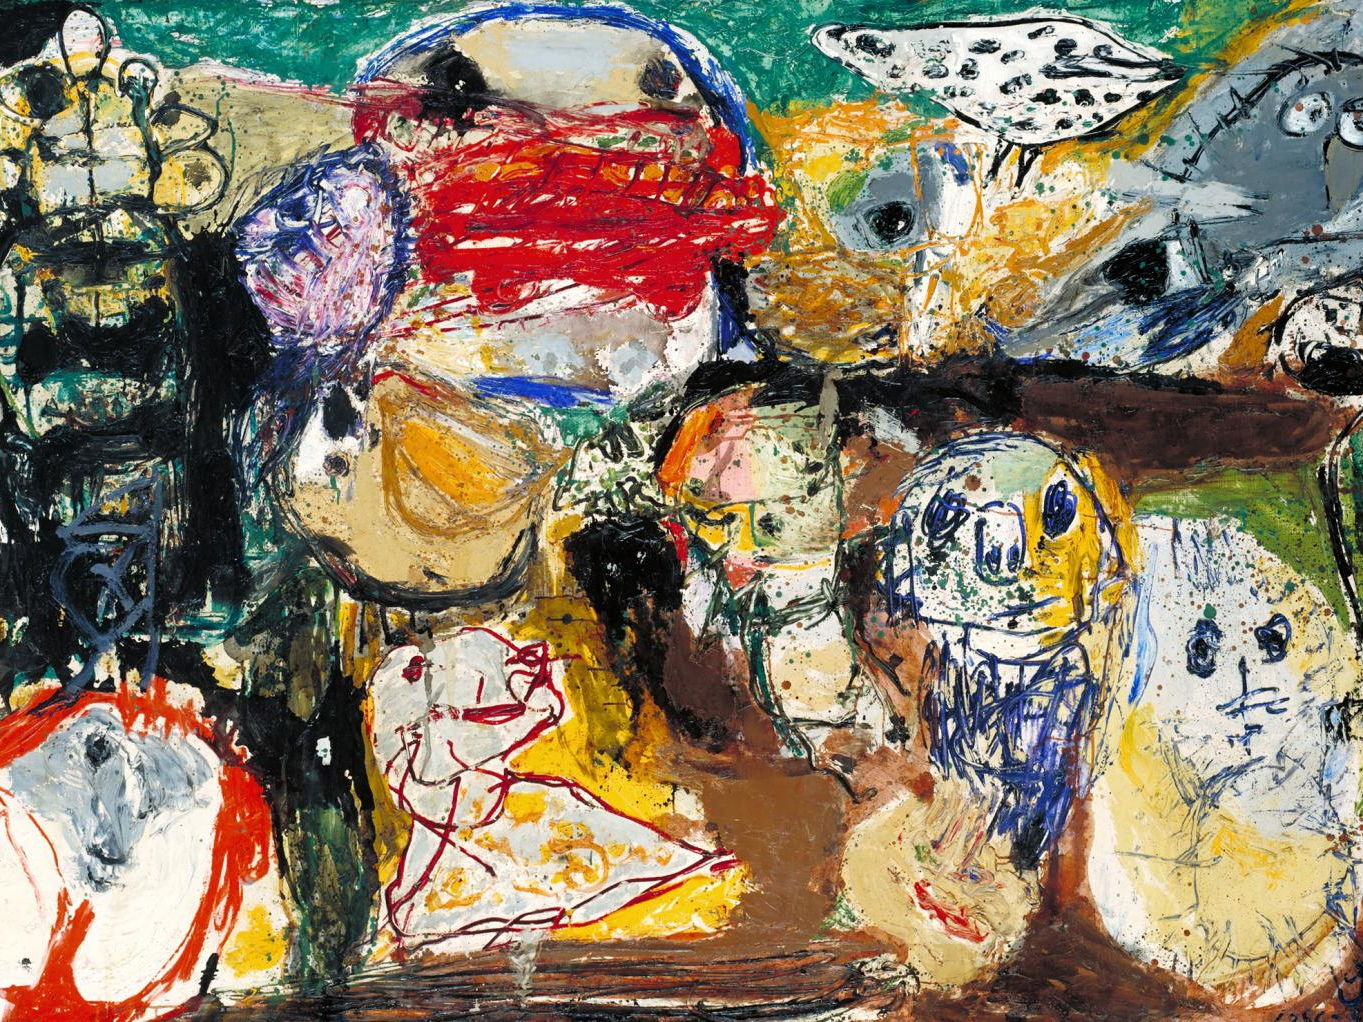 Asger Jorn, his sourced artist quotes on painting, art & life + facts & histories by the painter